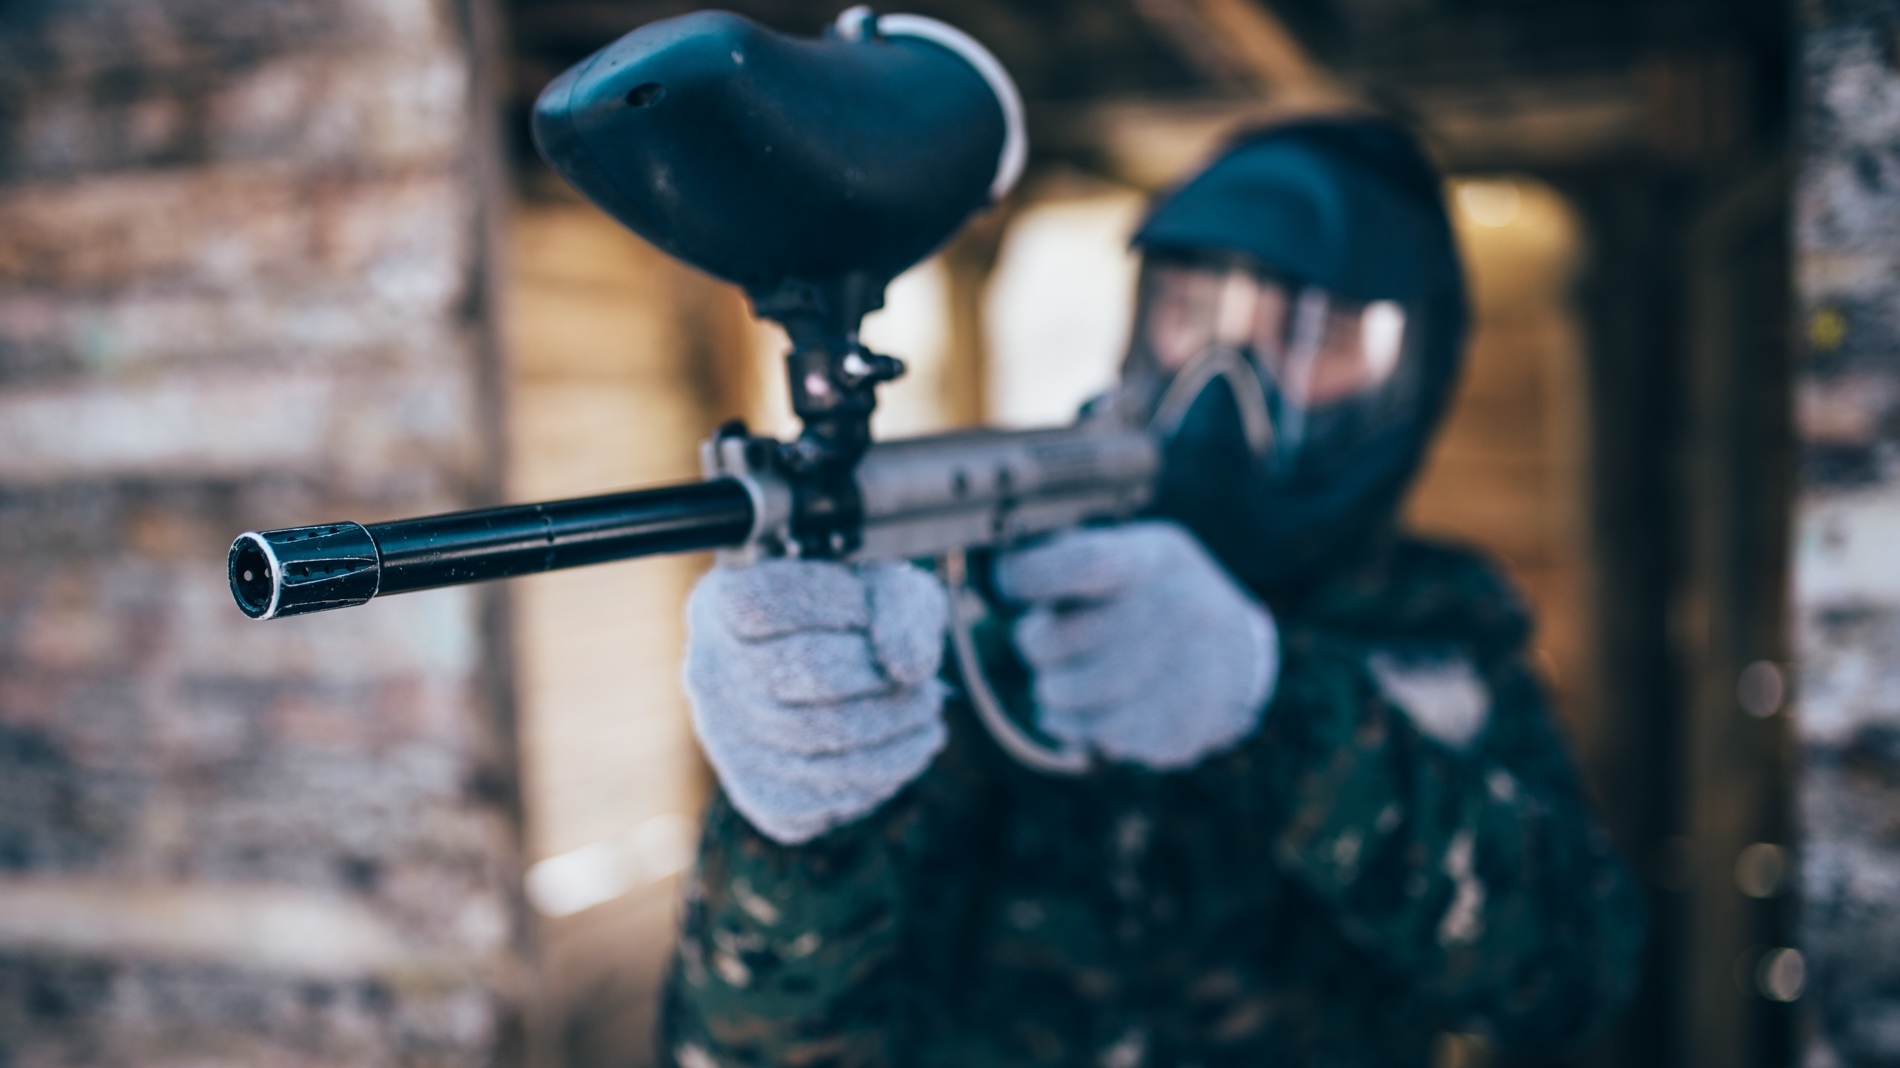 paintball-player-with-marker-gun-front-view-P5HUW9R.jpg